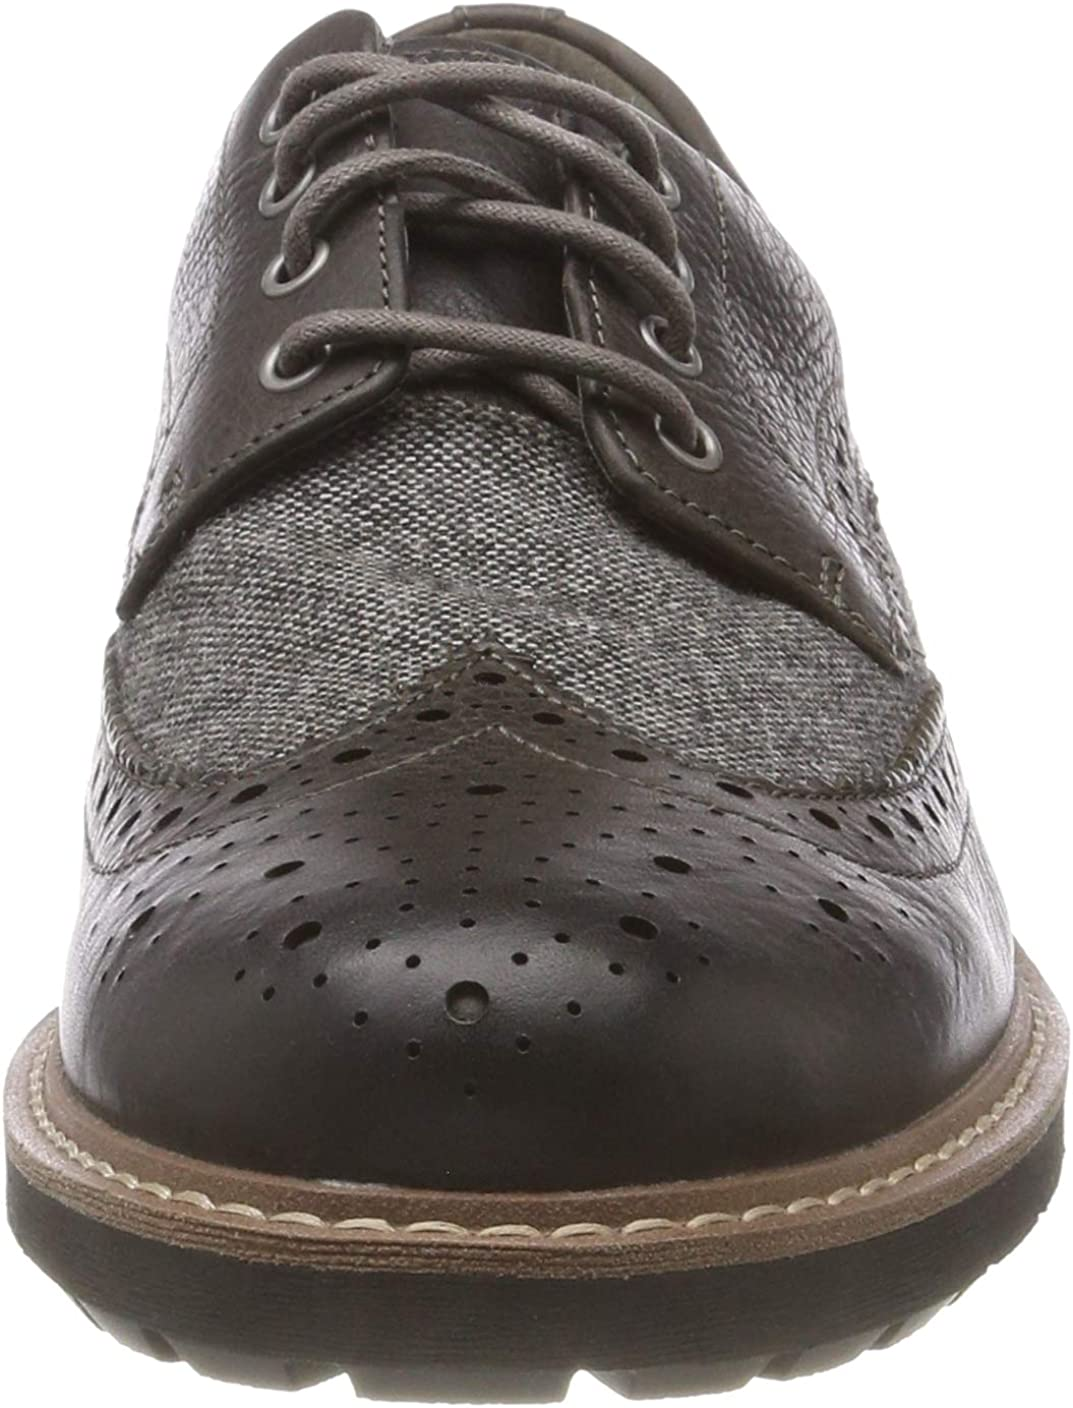 Clarks Batcombe Wing Leather Shoes in Dark Tan